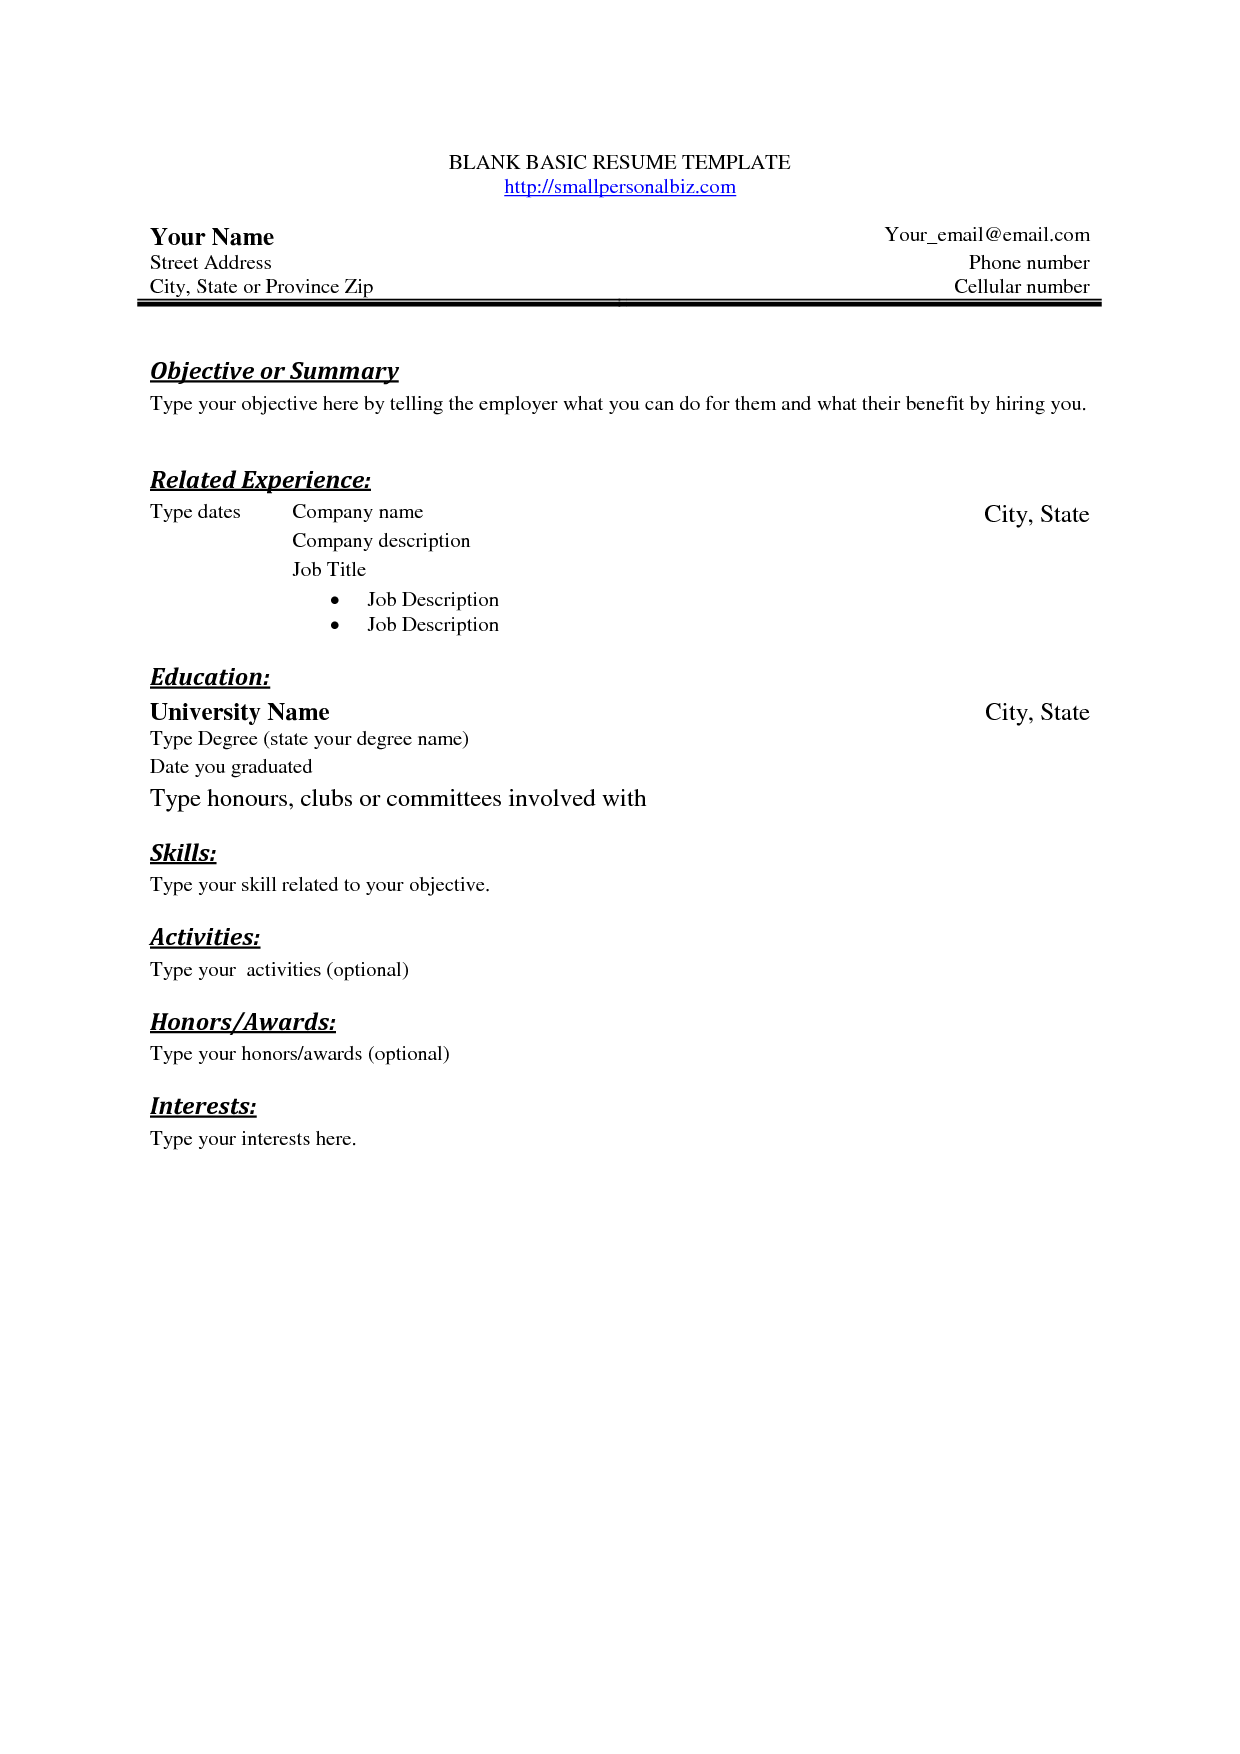 Stylist And Luxury Simple Resume Layout 10 Free Basic Blank Resume Template    Resume Example  Basic Resume Template